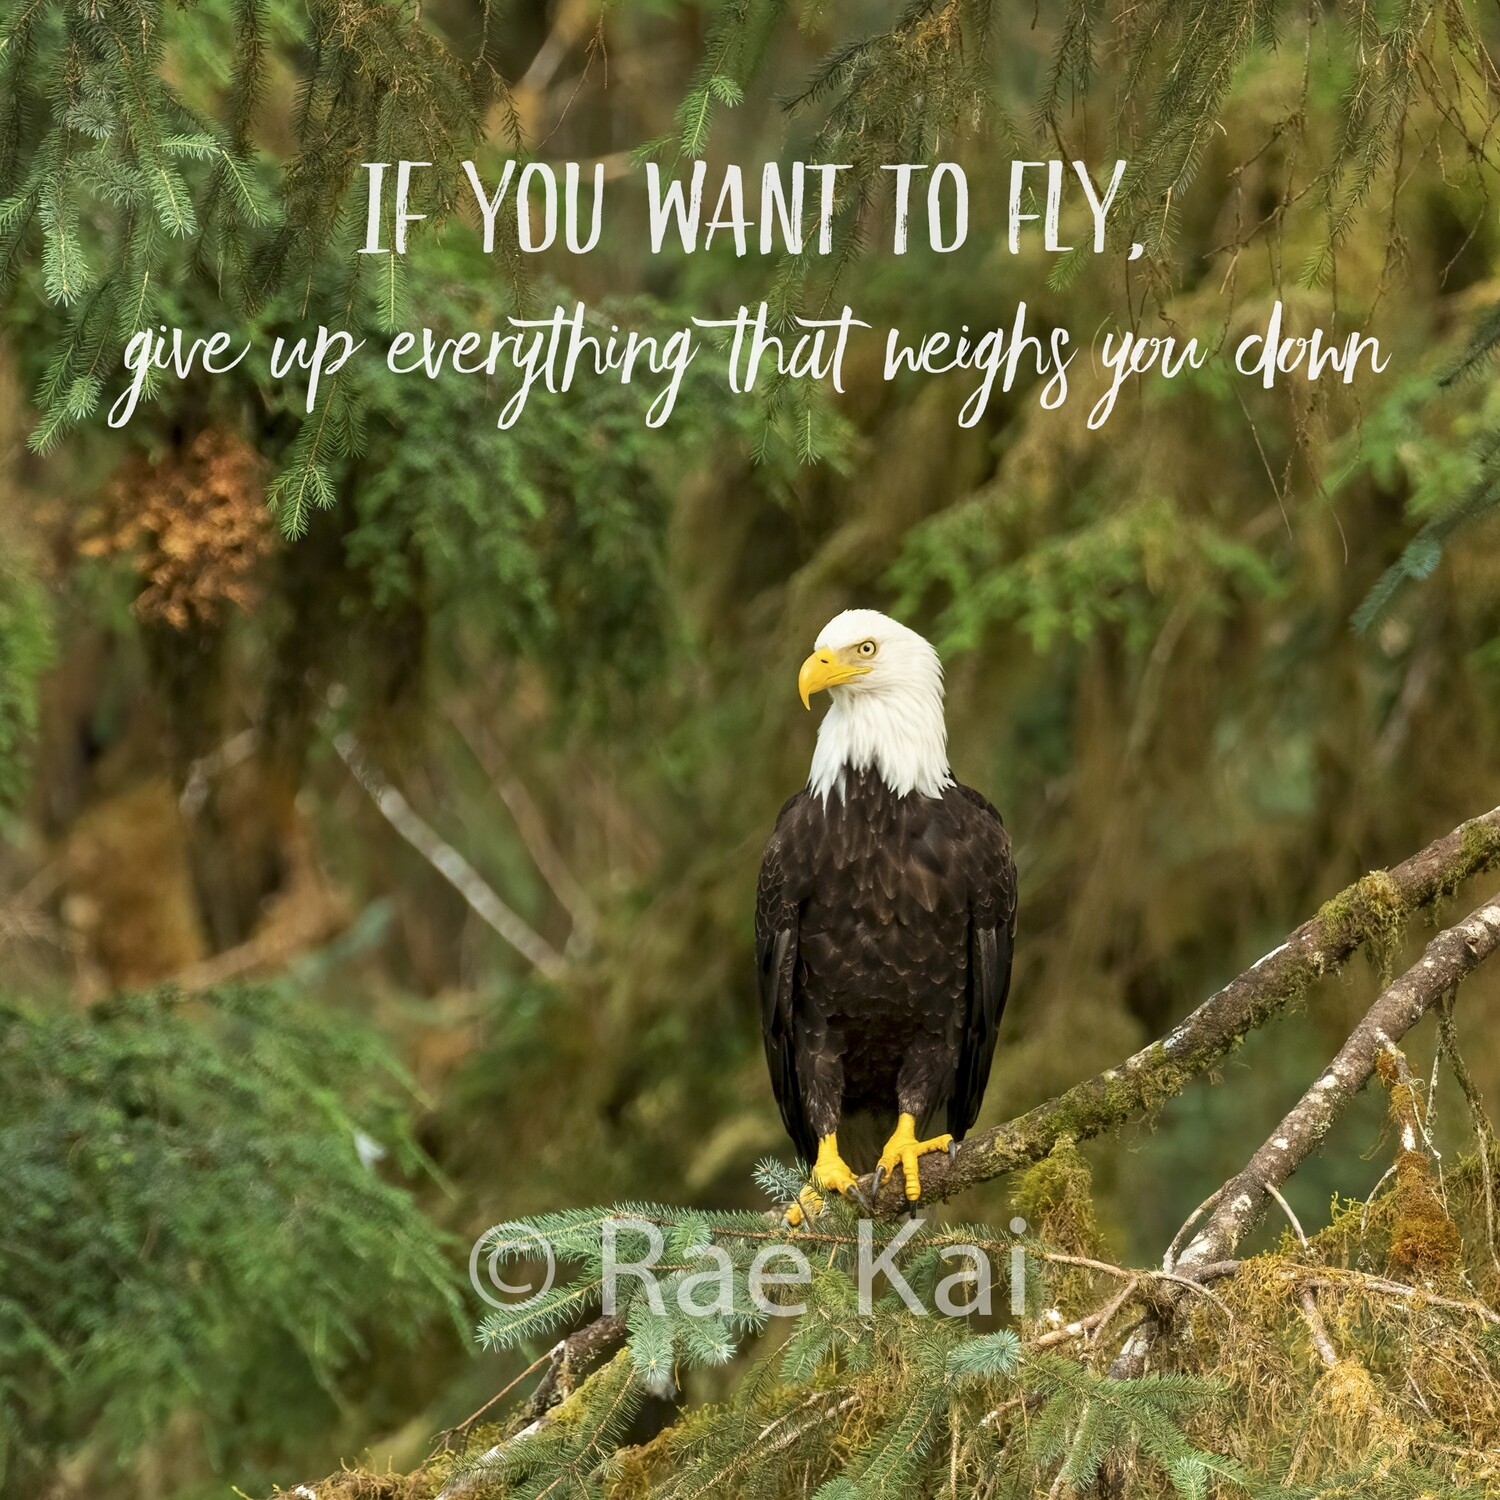 If You Want to Fly-Inspirational Square Photo